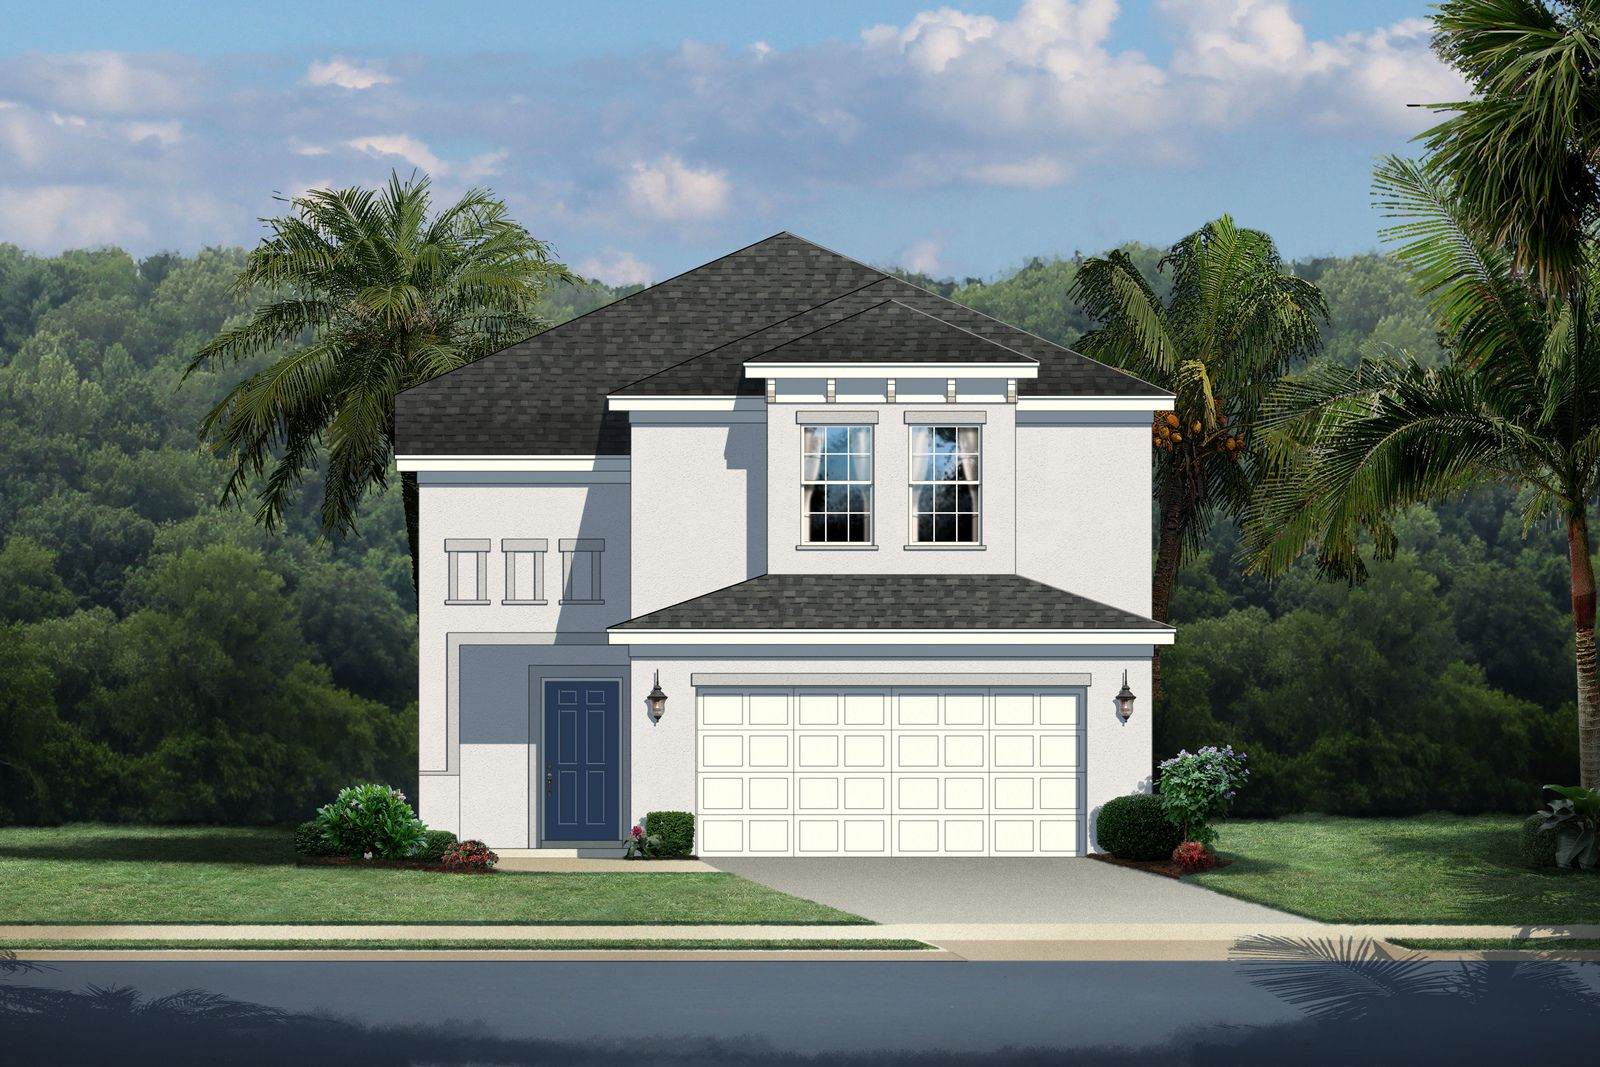 Come explore beautiful Crosstown Commons in Port St. Lucie, FL:Our most popular floorplan, the Summerland, offers 4 bedrooms, a loft area and a study, so you can have additional space to accommodate today's busy lifestyle.Visit Us Today!